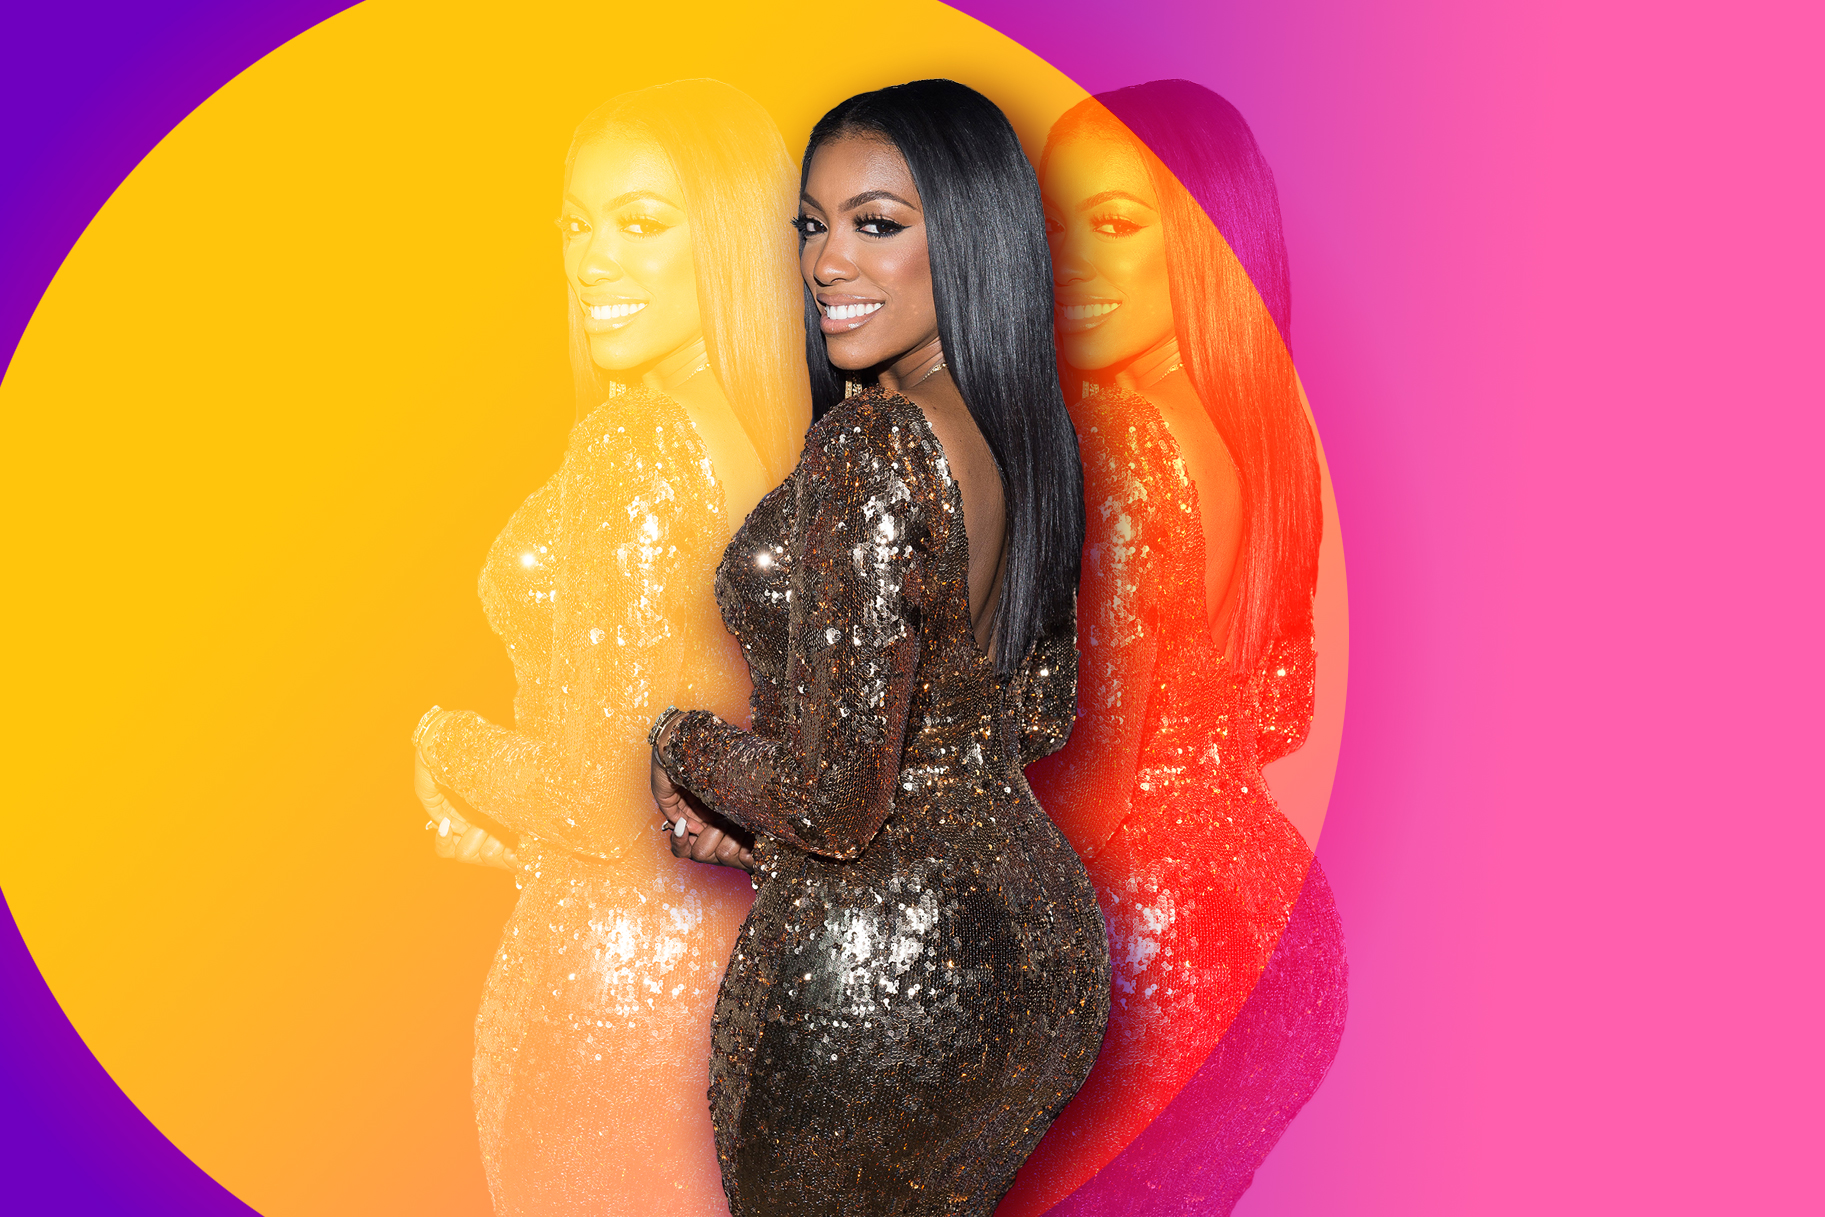 Porsha Williams Leaves 2019 With No Makeup Pics With Her Mom On Their Mexico Vacay